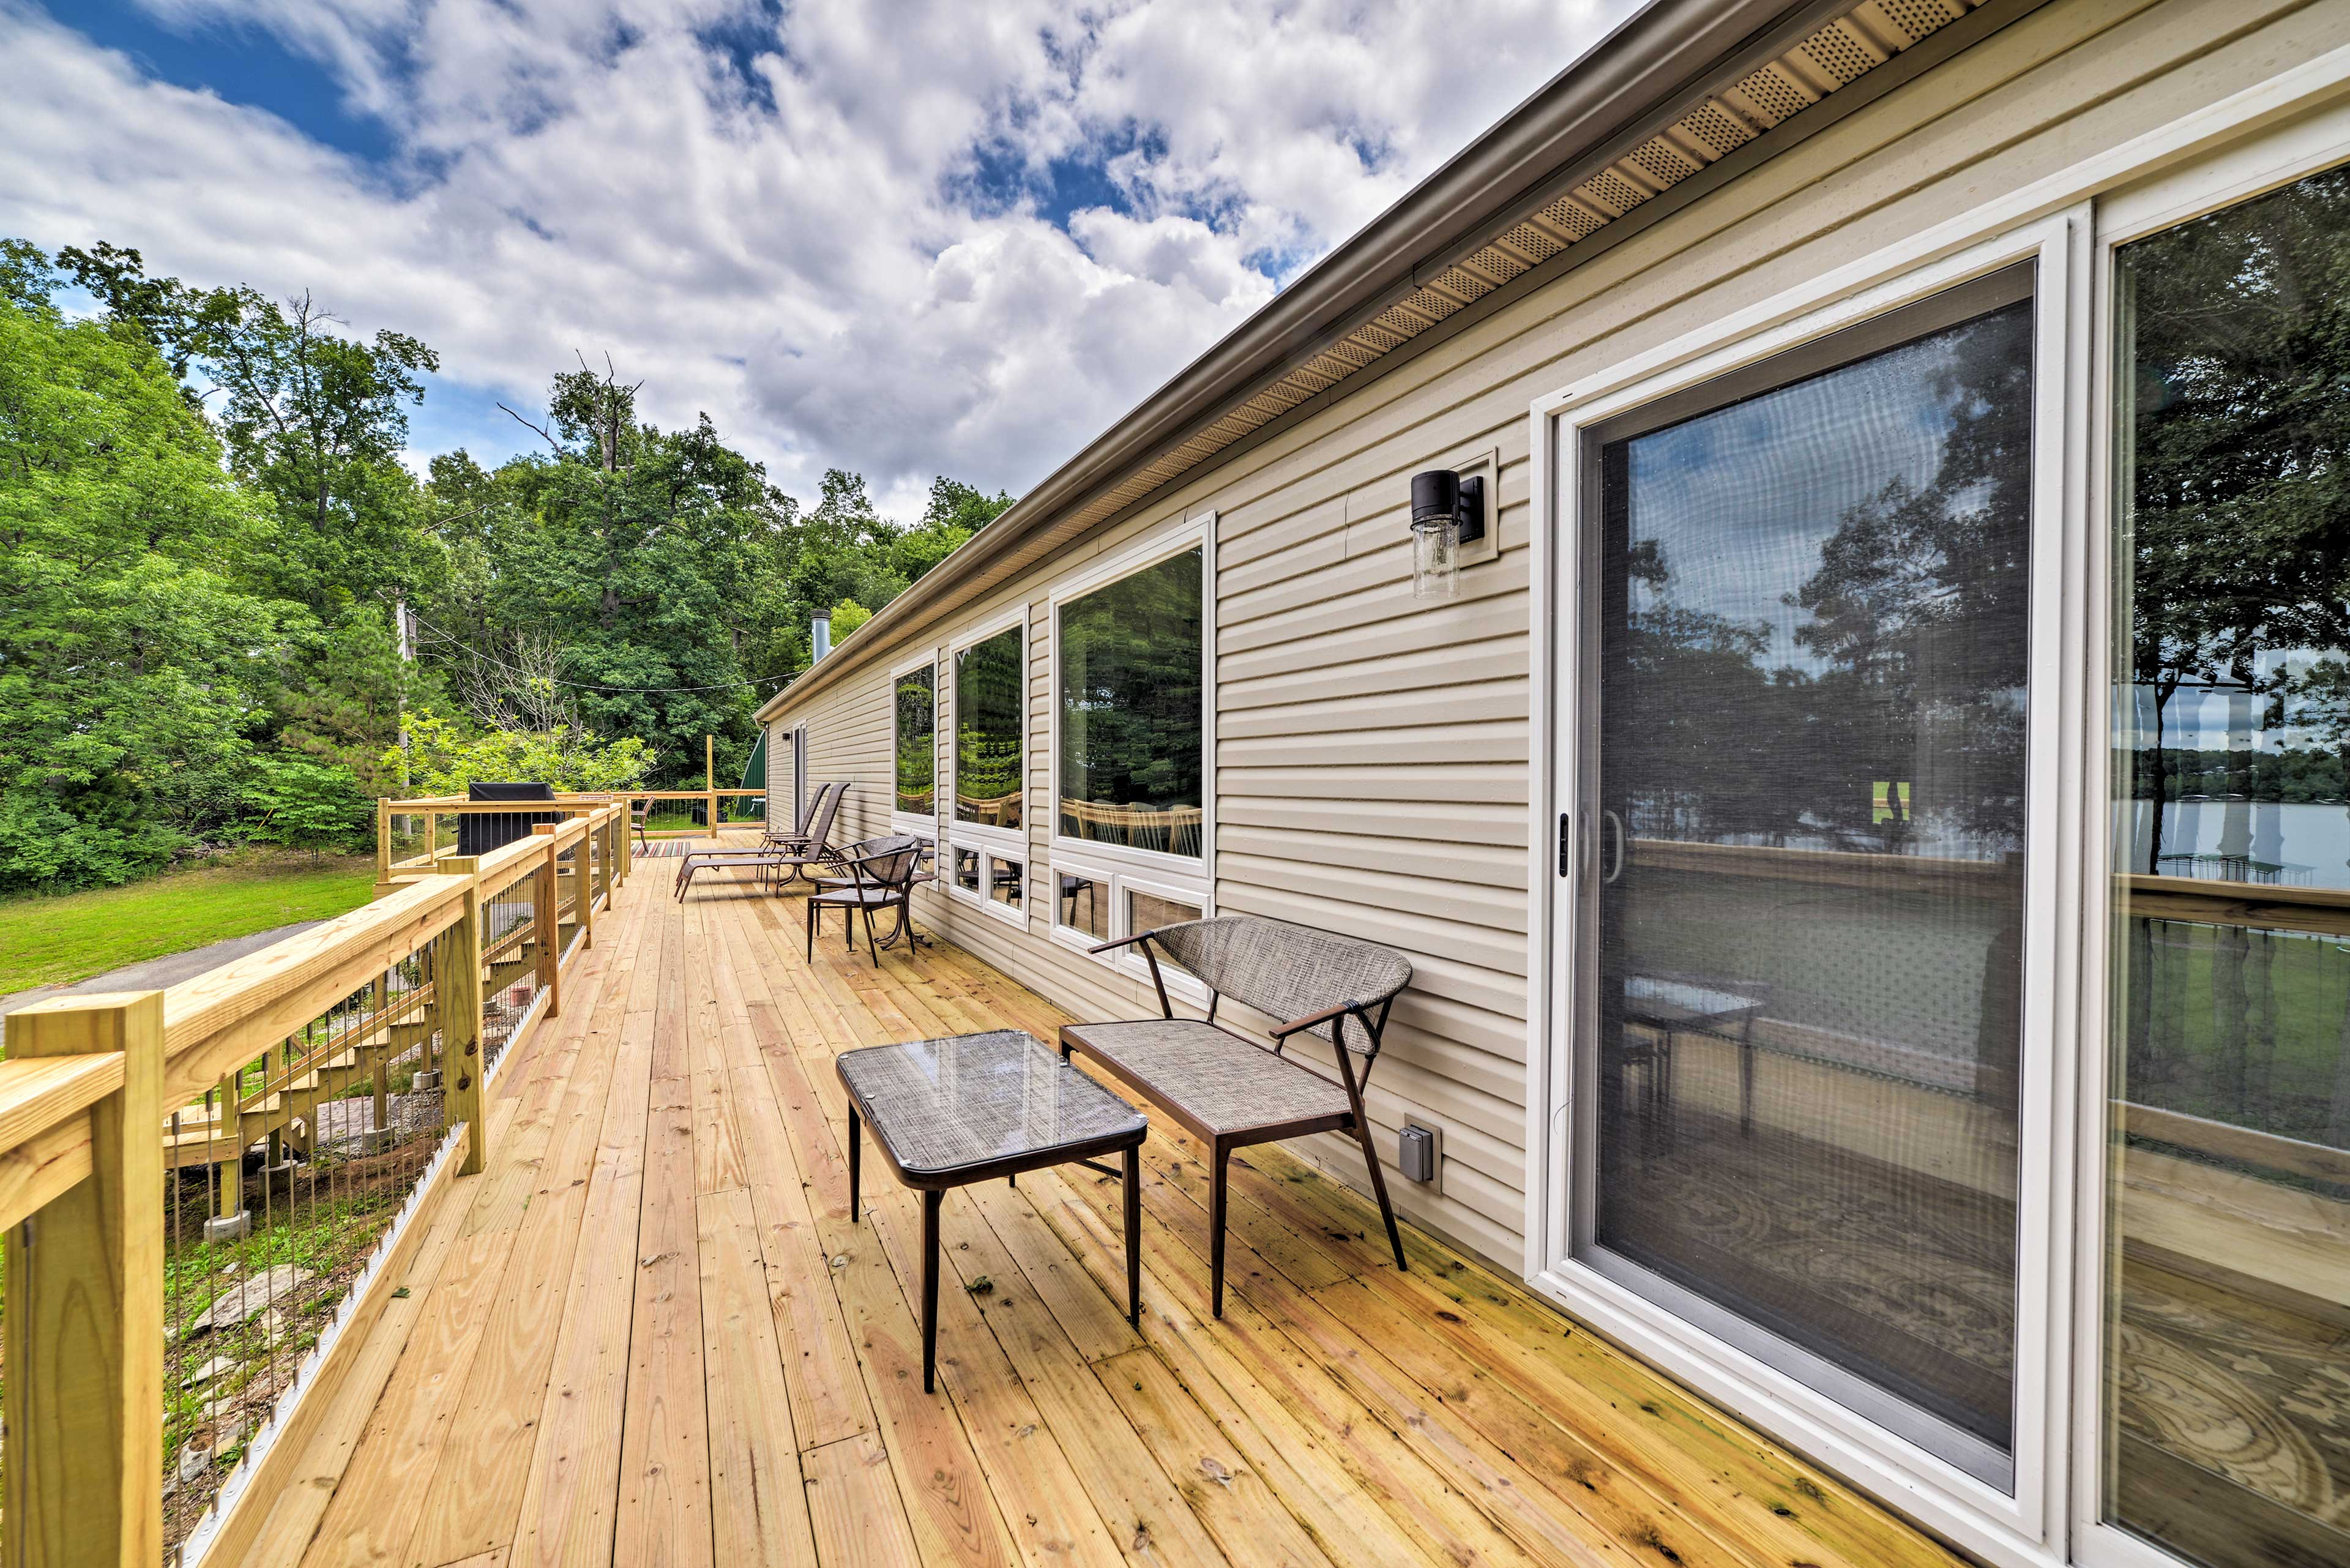 Step out to the deck and breathe the fresh lake air.